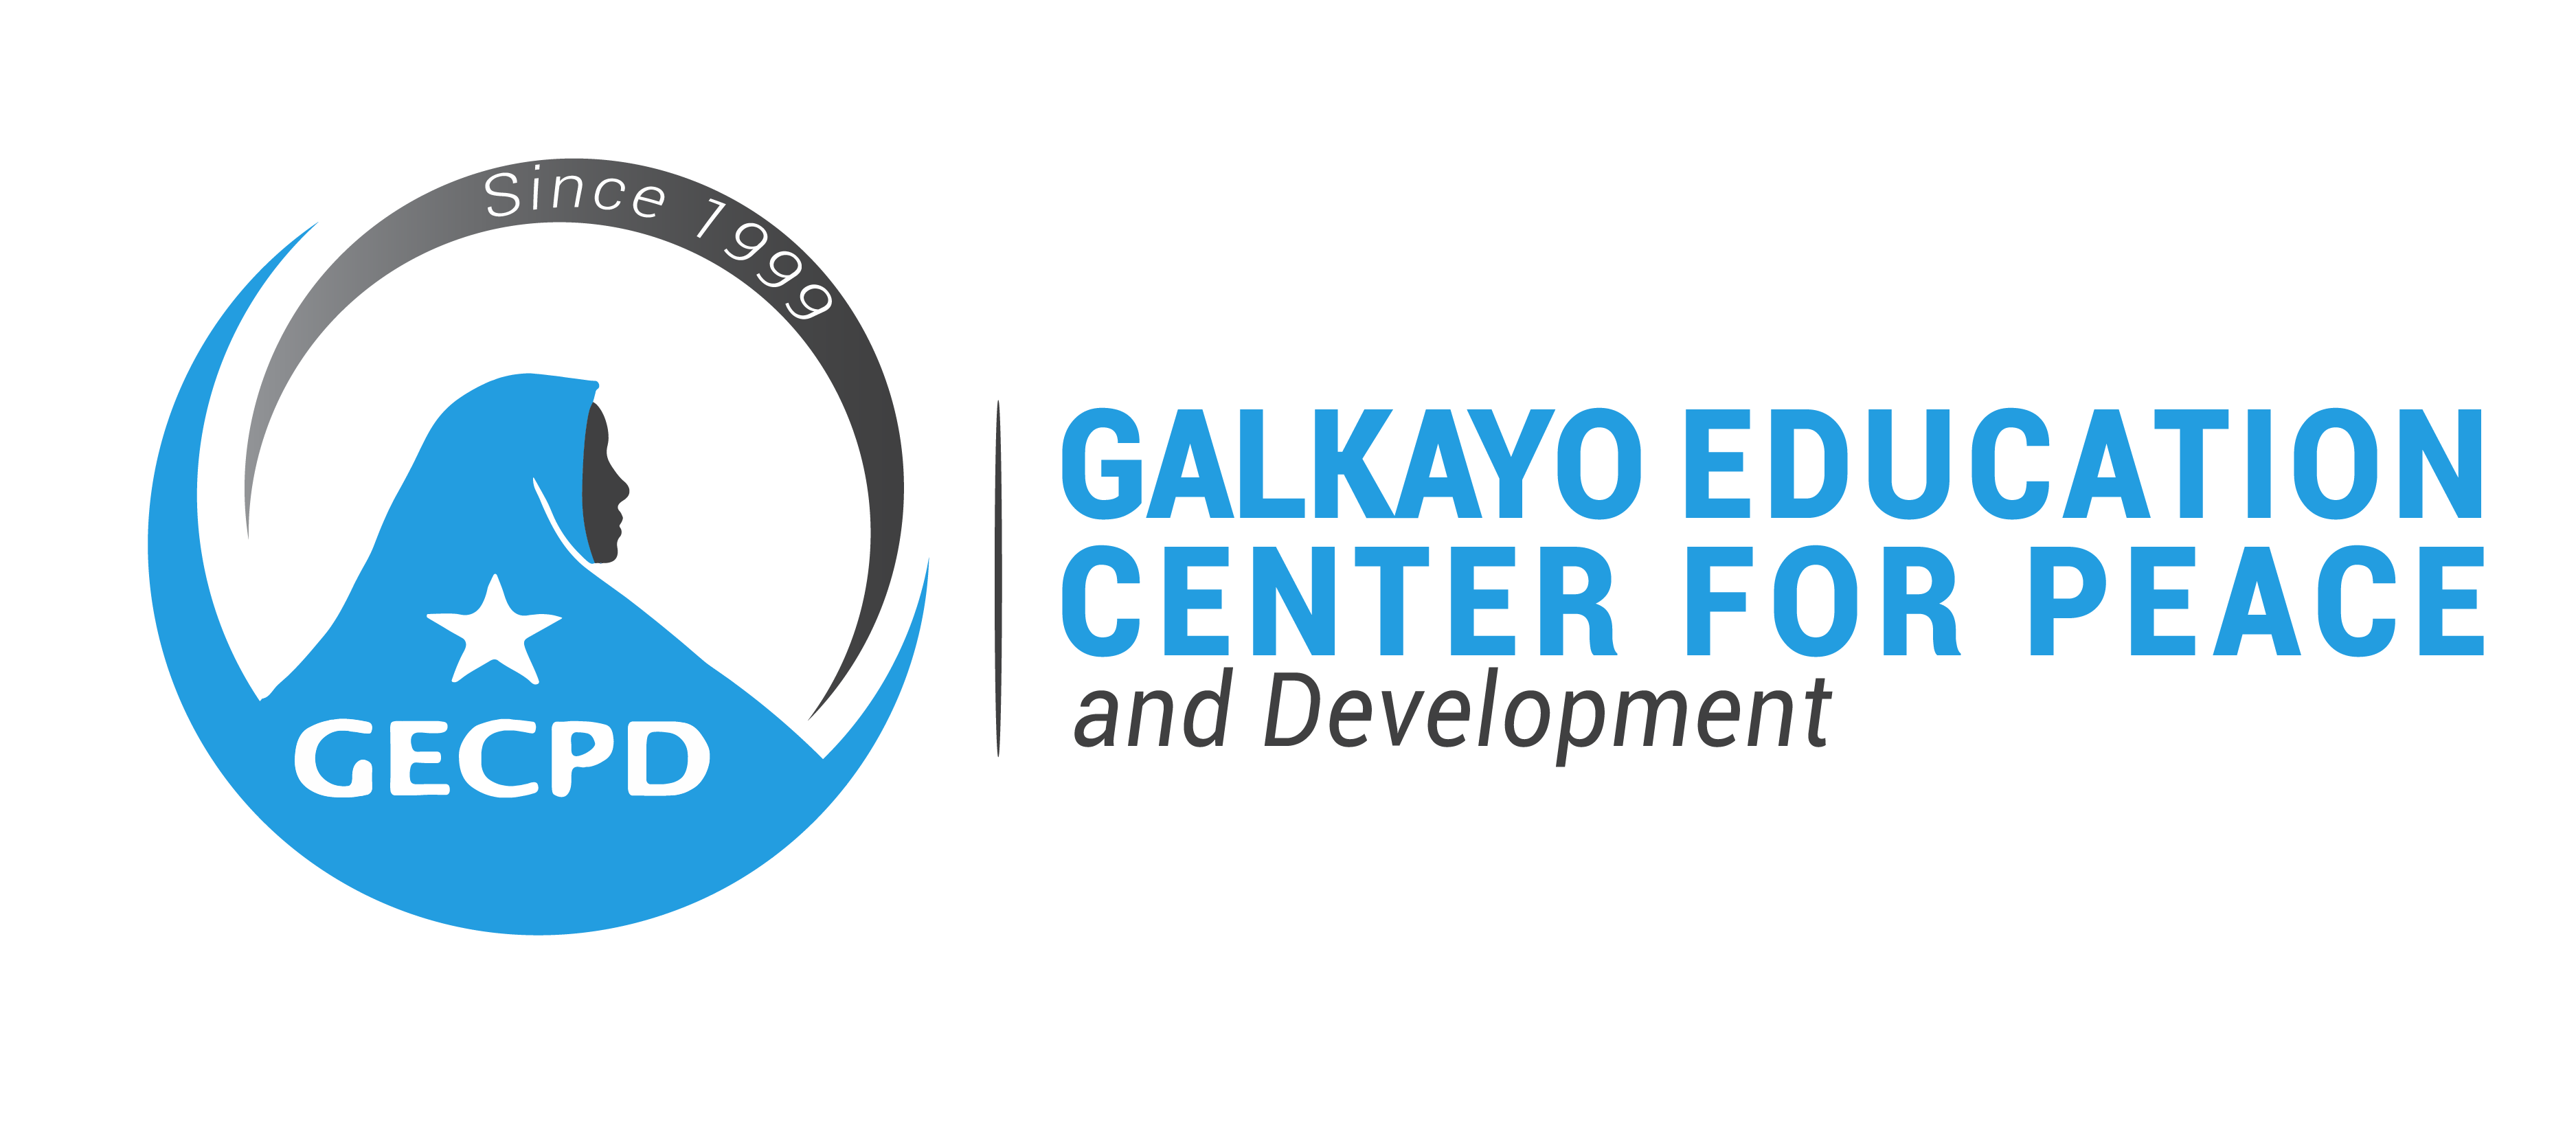 Galkayo Education Center